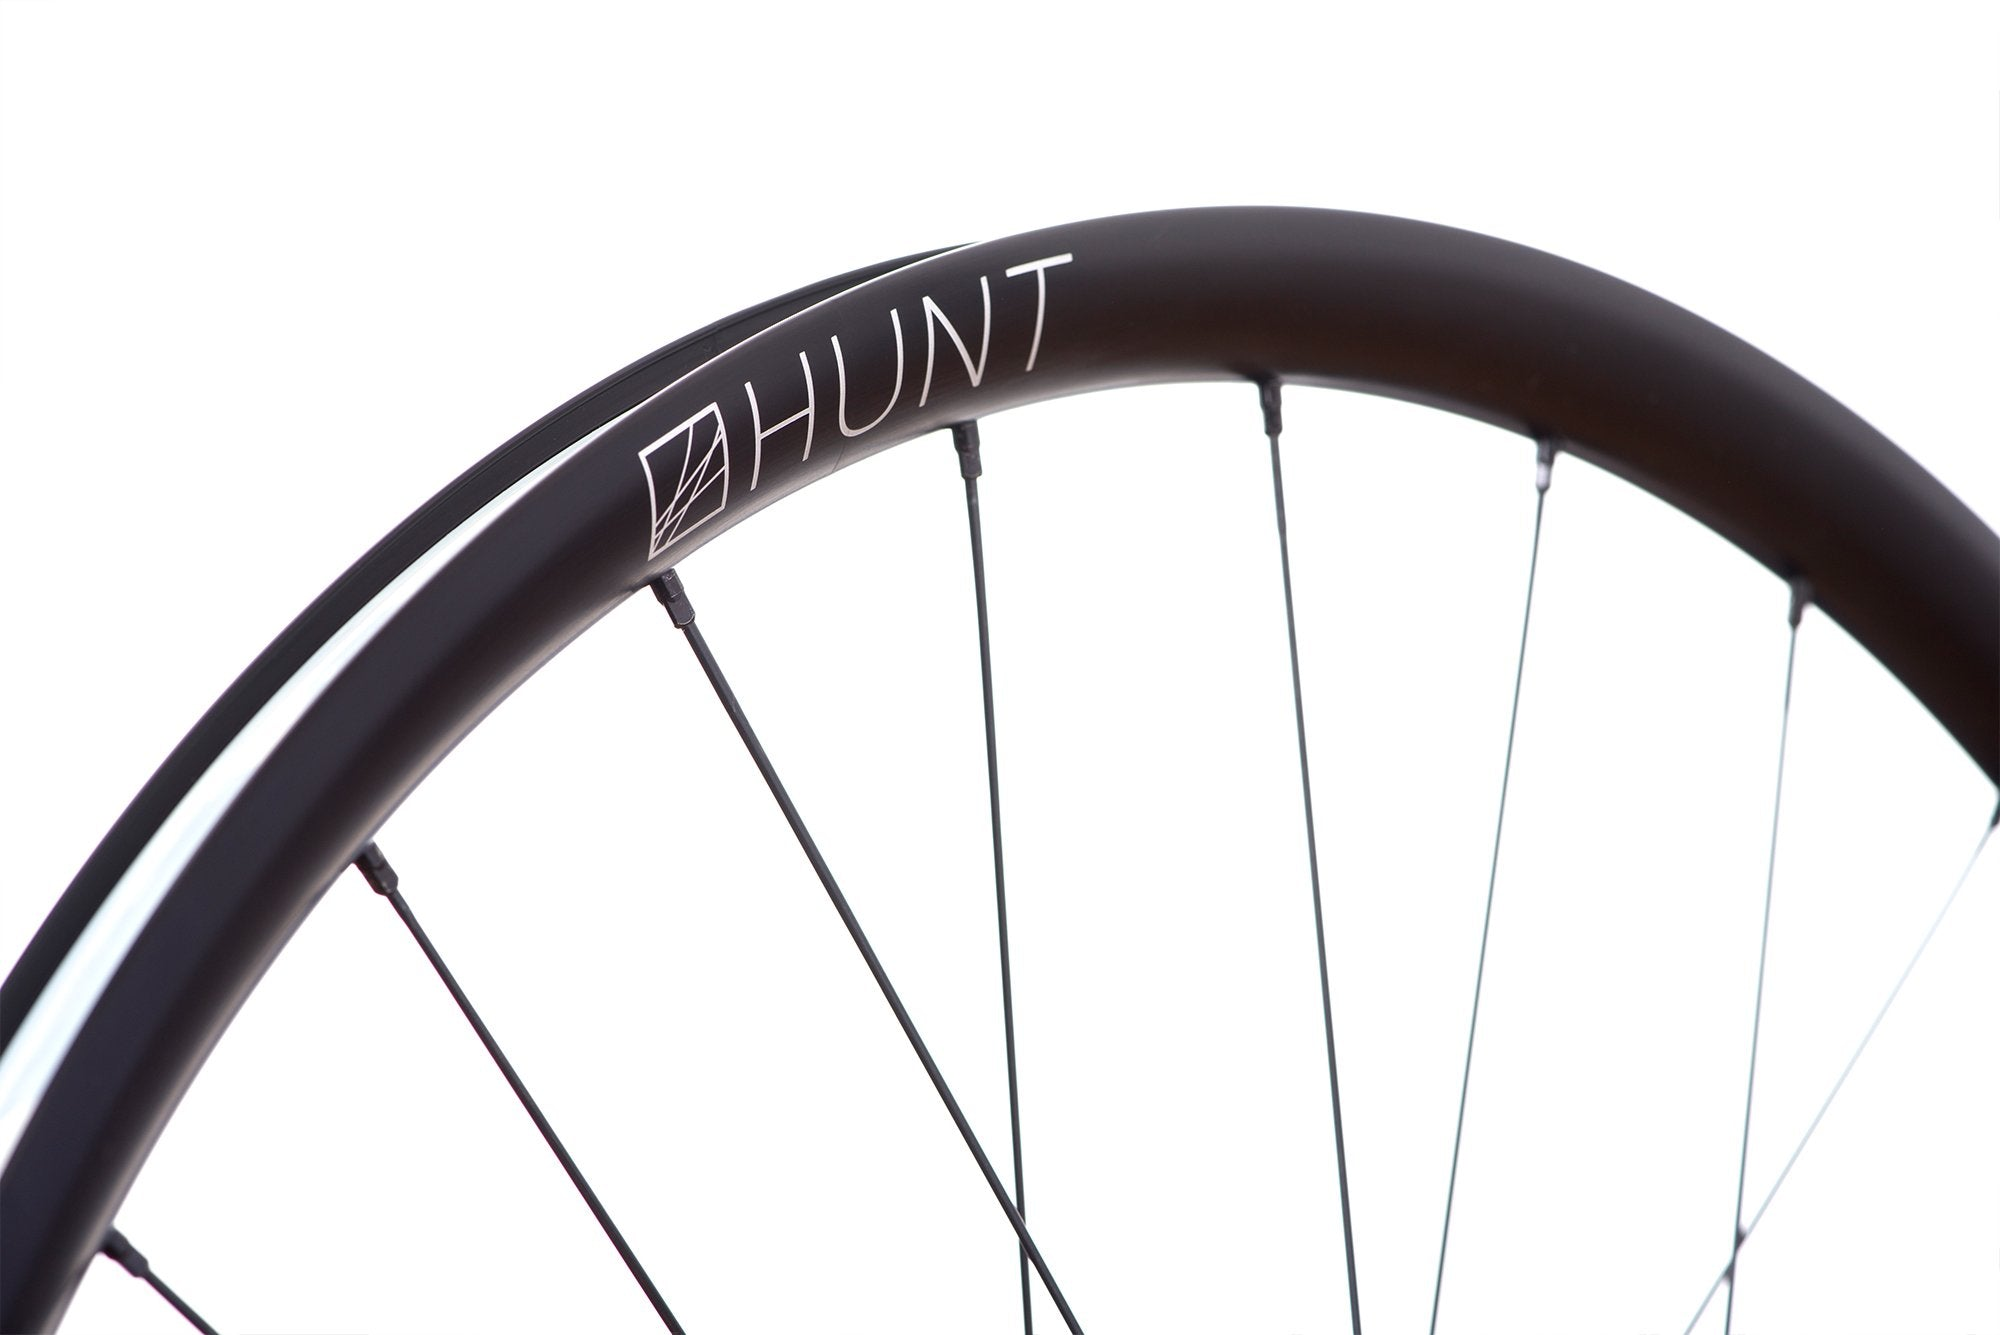 <h1>Rims</h1><i>A strong and lightweight 6061-T6 heat-treated rim features an asymmetric shape which is inverted from front to rear to provide balanced higher spoke tensions meaning your spokes stay tight for the long term. The rim profile is disc specific which allows higher-strength to weight as no reinforcement is required for a braking surface. The extra wide rim at 25mm (20mm internal) which creates a great tyre profile with wider 25-50mm tyres, giving excellent grip and lower rolling resistance.</i>